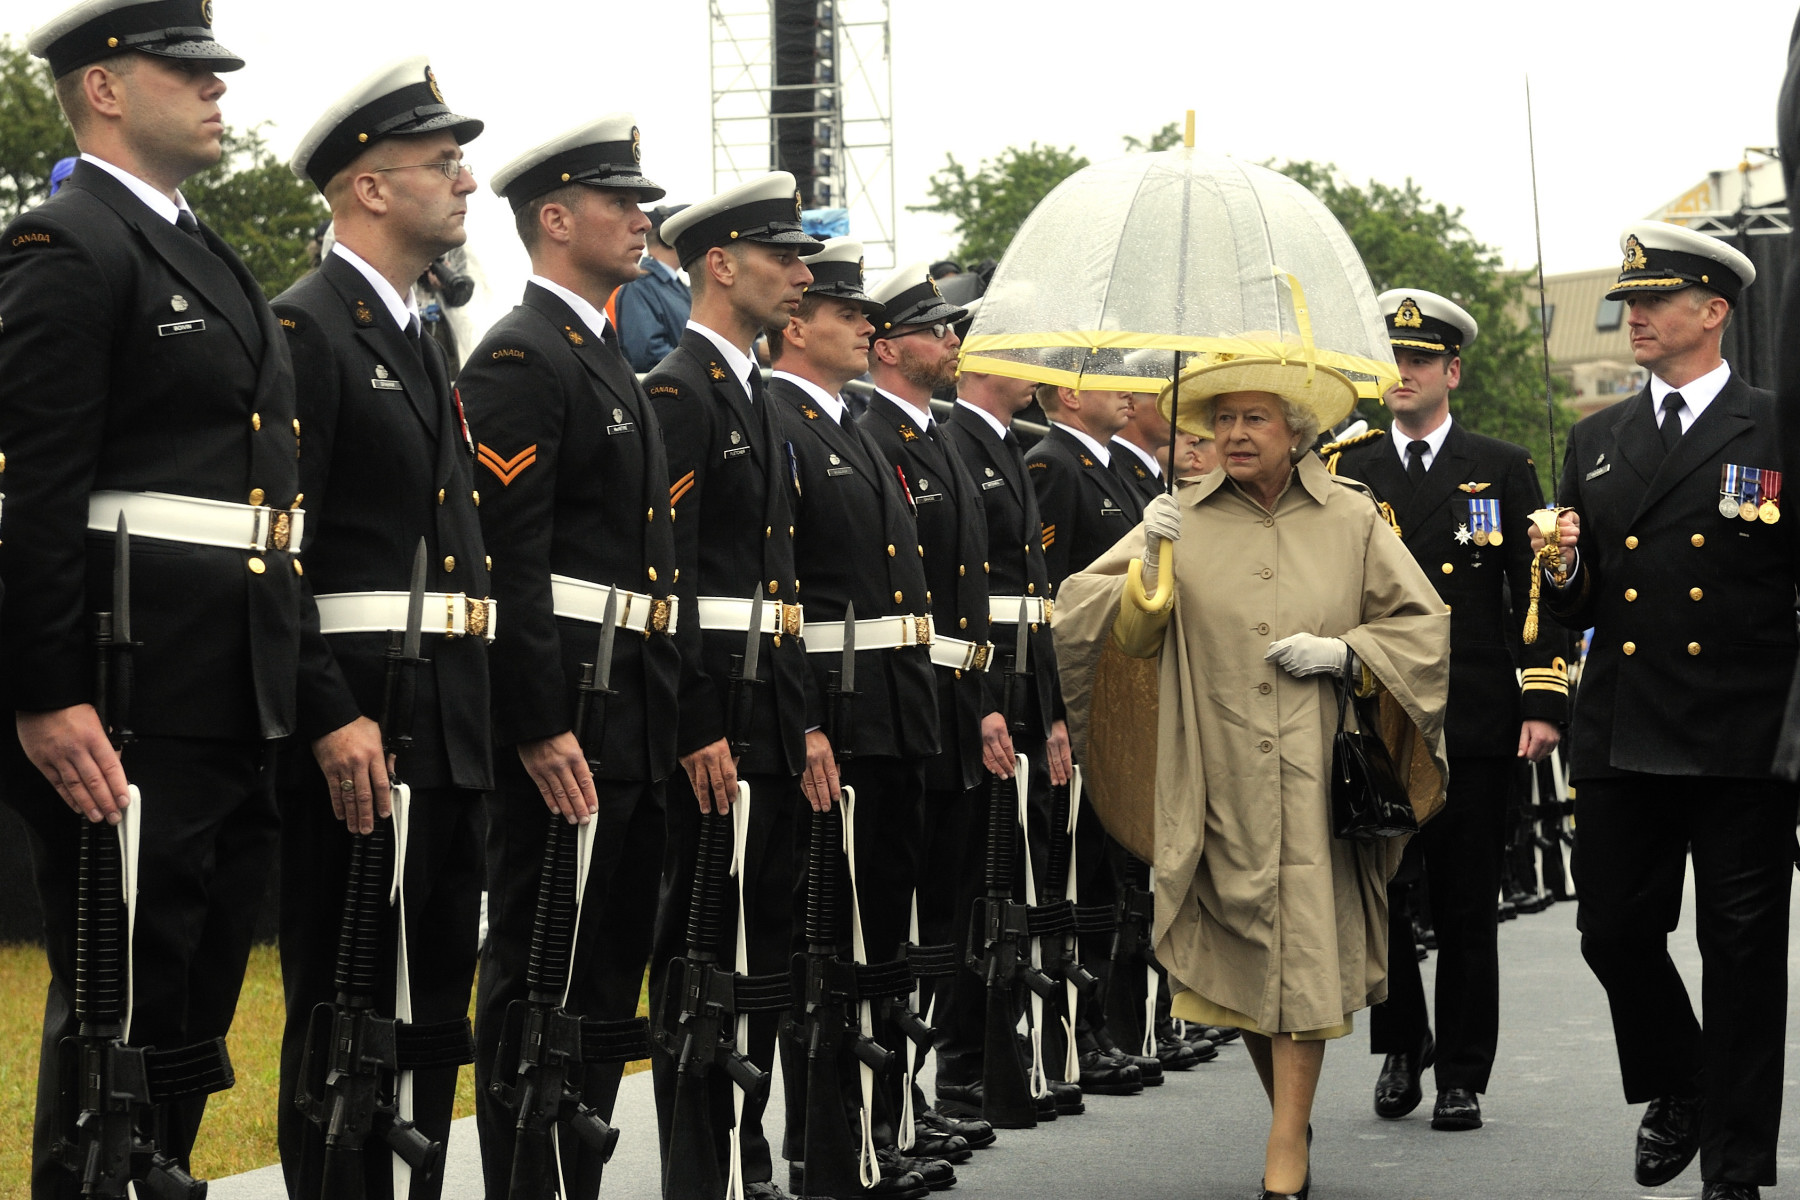 Her Majesty The Queen and His Royal Highness The Duke of Edinburgh will tour Halifax, Ottawa, Winnipeg, Toronto and Waterloo from June 28 to July 6, 2010. Upon her arrival, The Queen inspected the Guard of Honour.